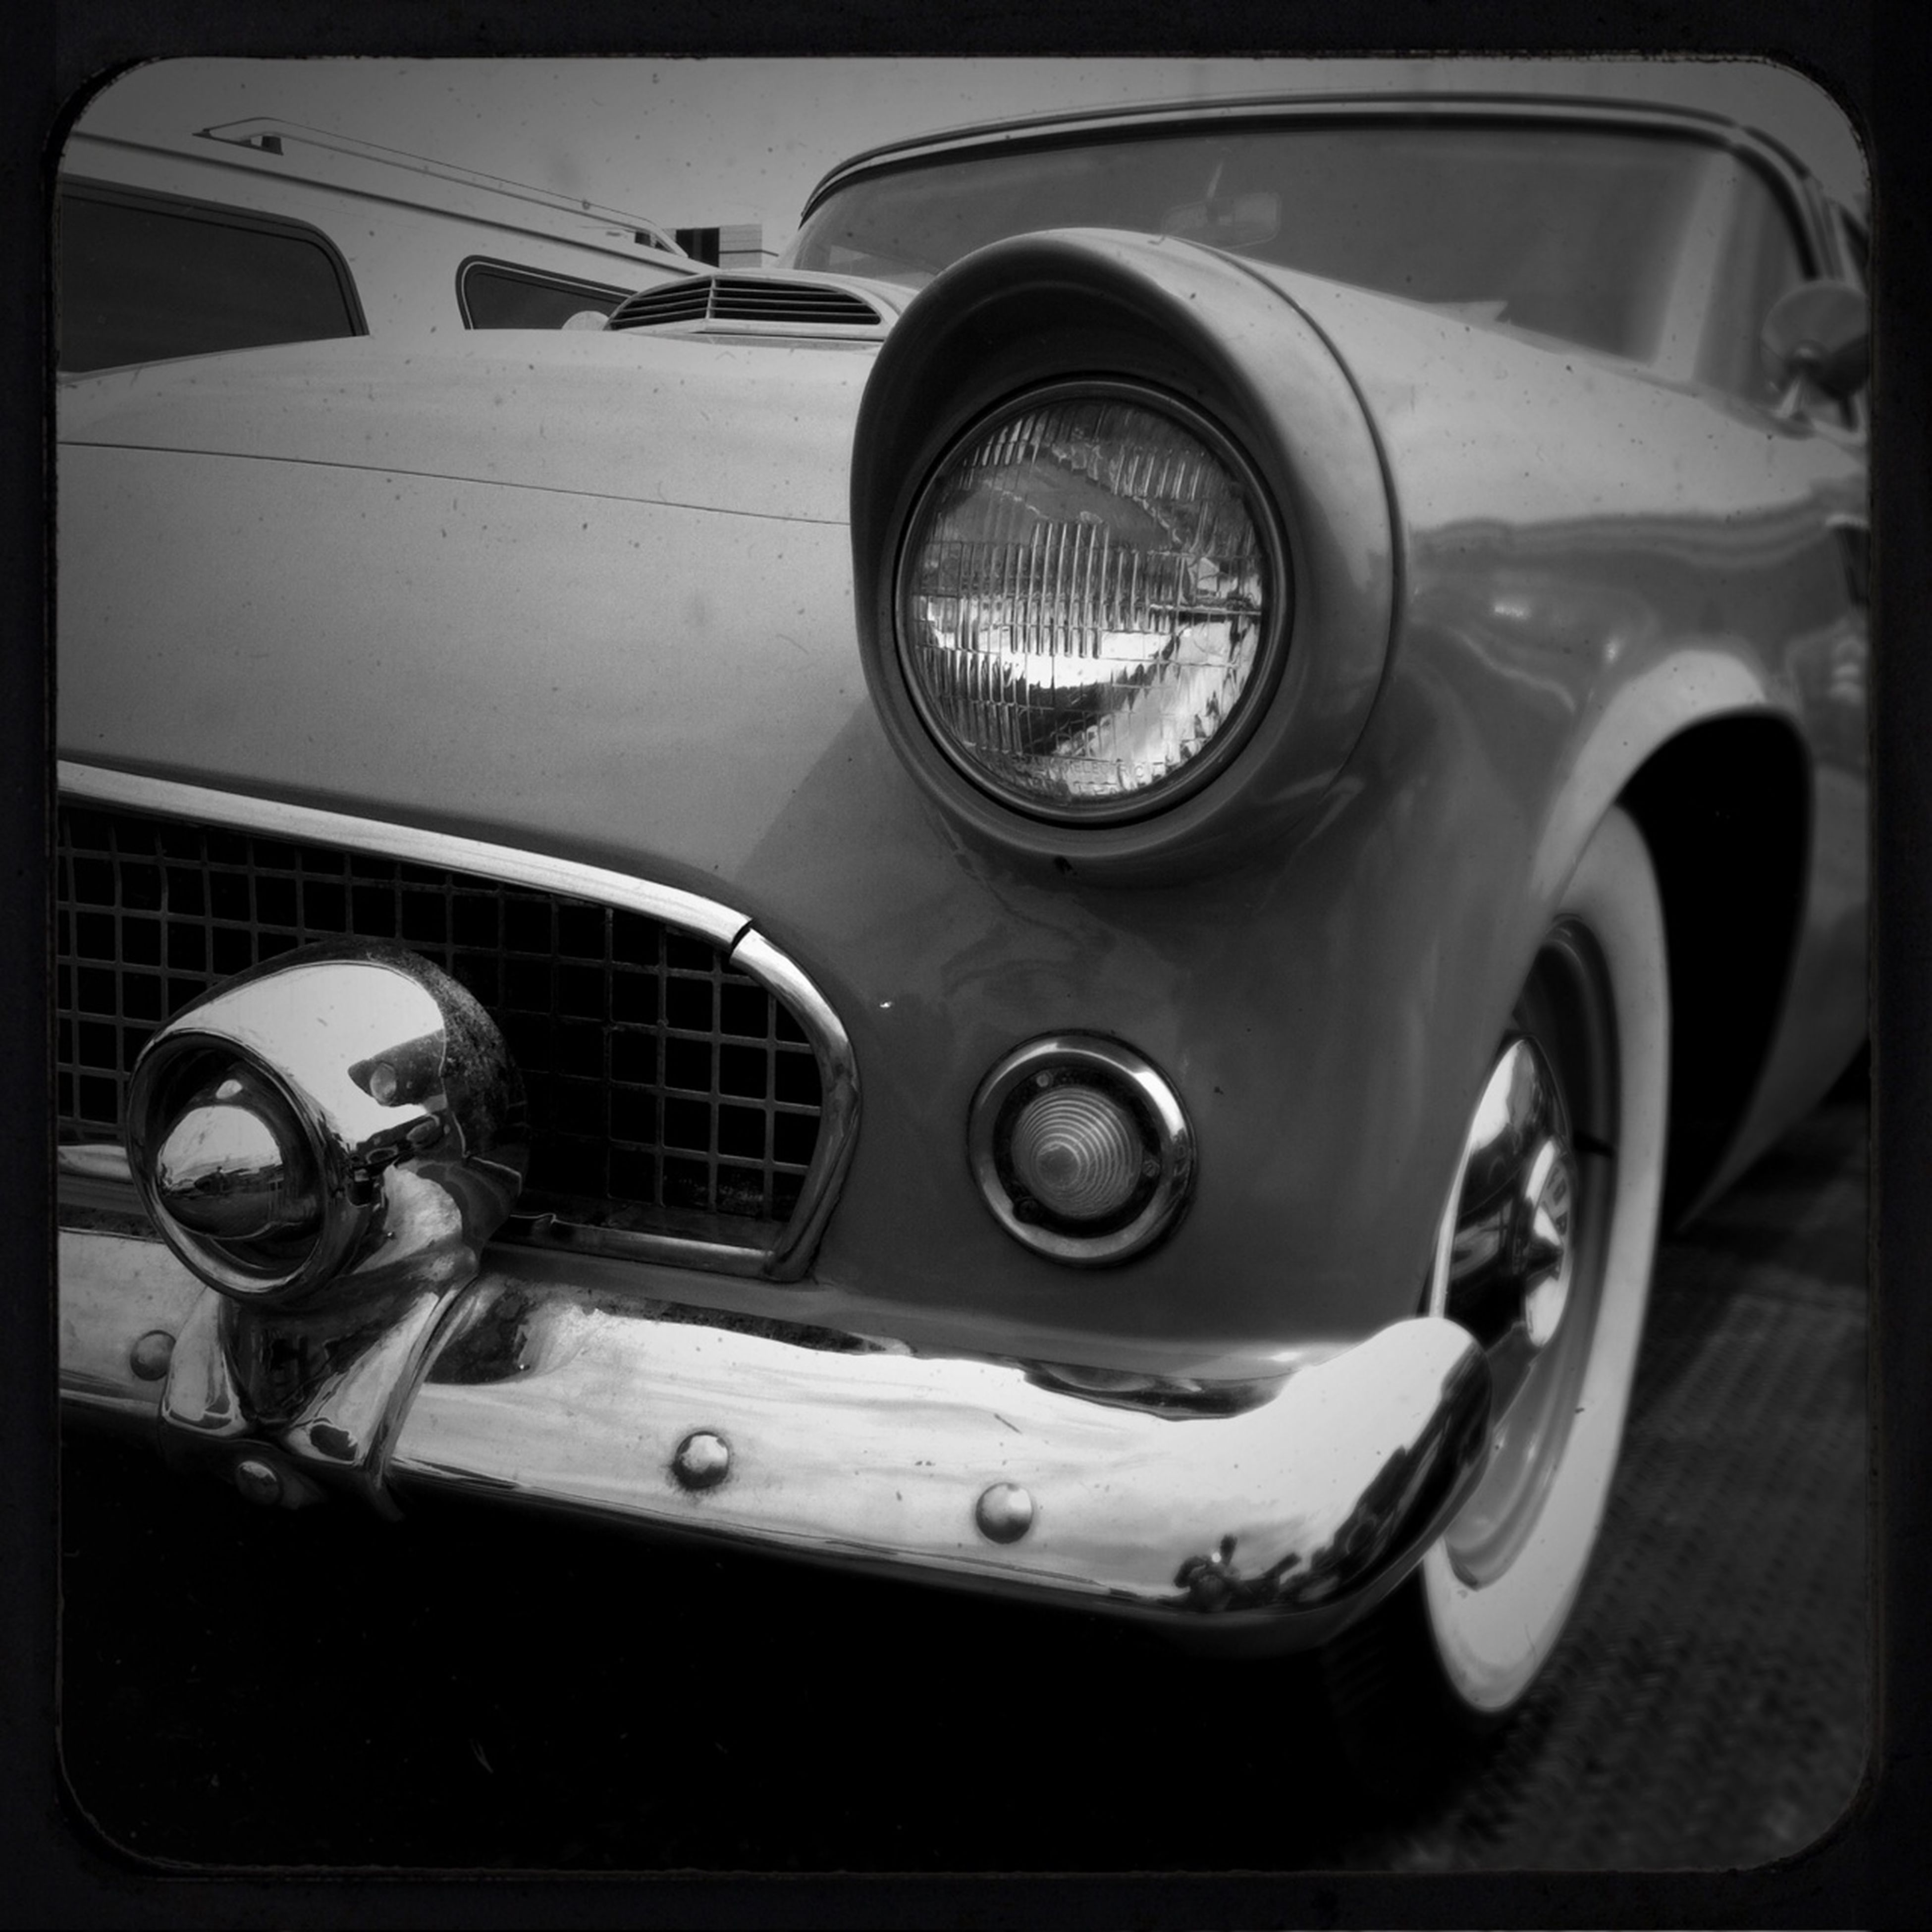 transportation, mode of transport, land vehicle, car, retro styled, old-fashioned, headlight, vintage car, close-up, vehicle part, car interior, technology, stationary, travel, part of, vehicle interior, side-view mirror, dashboard, vintage, reflection